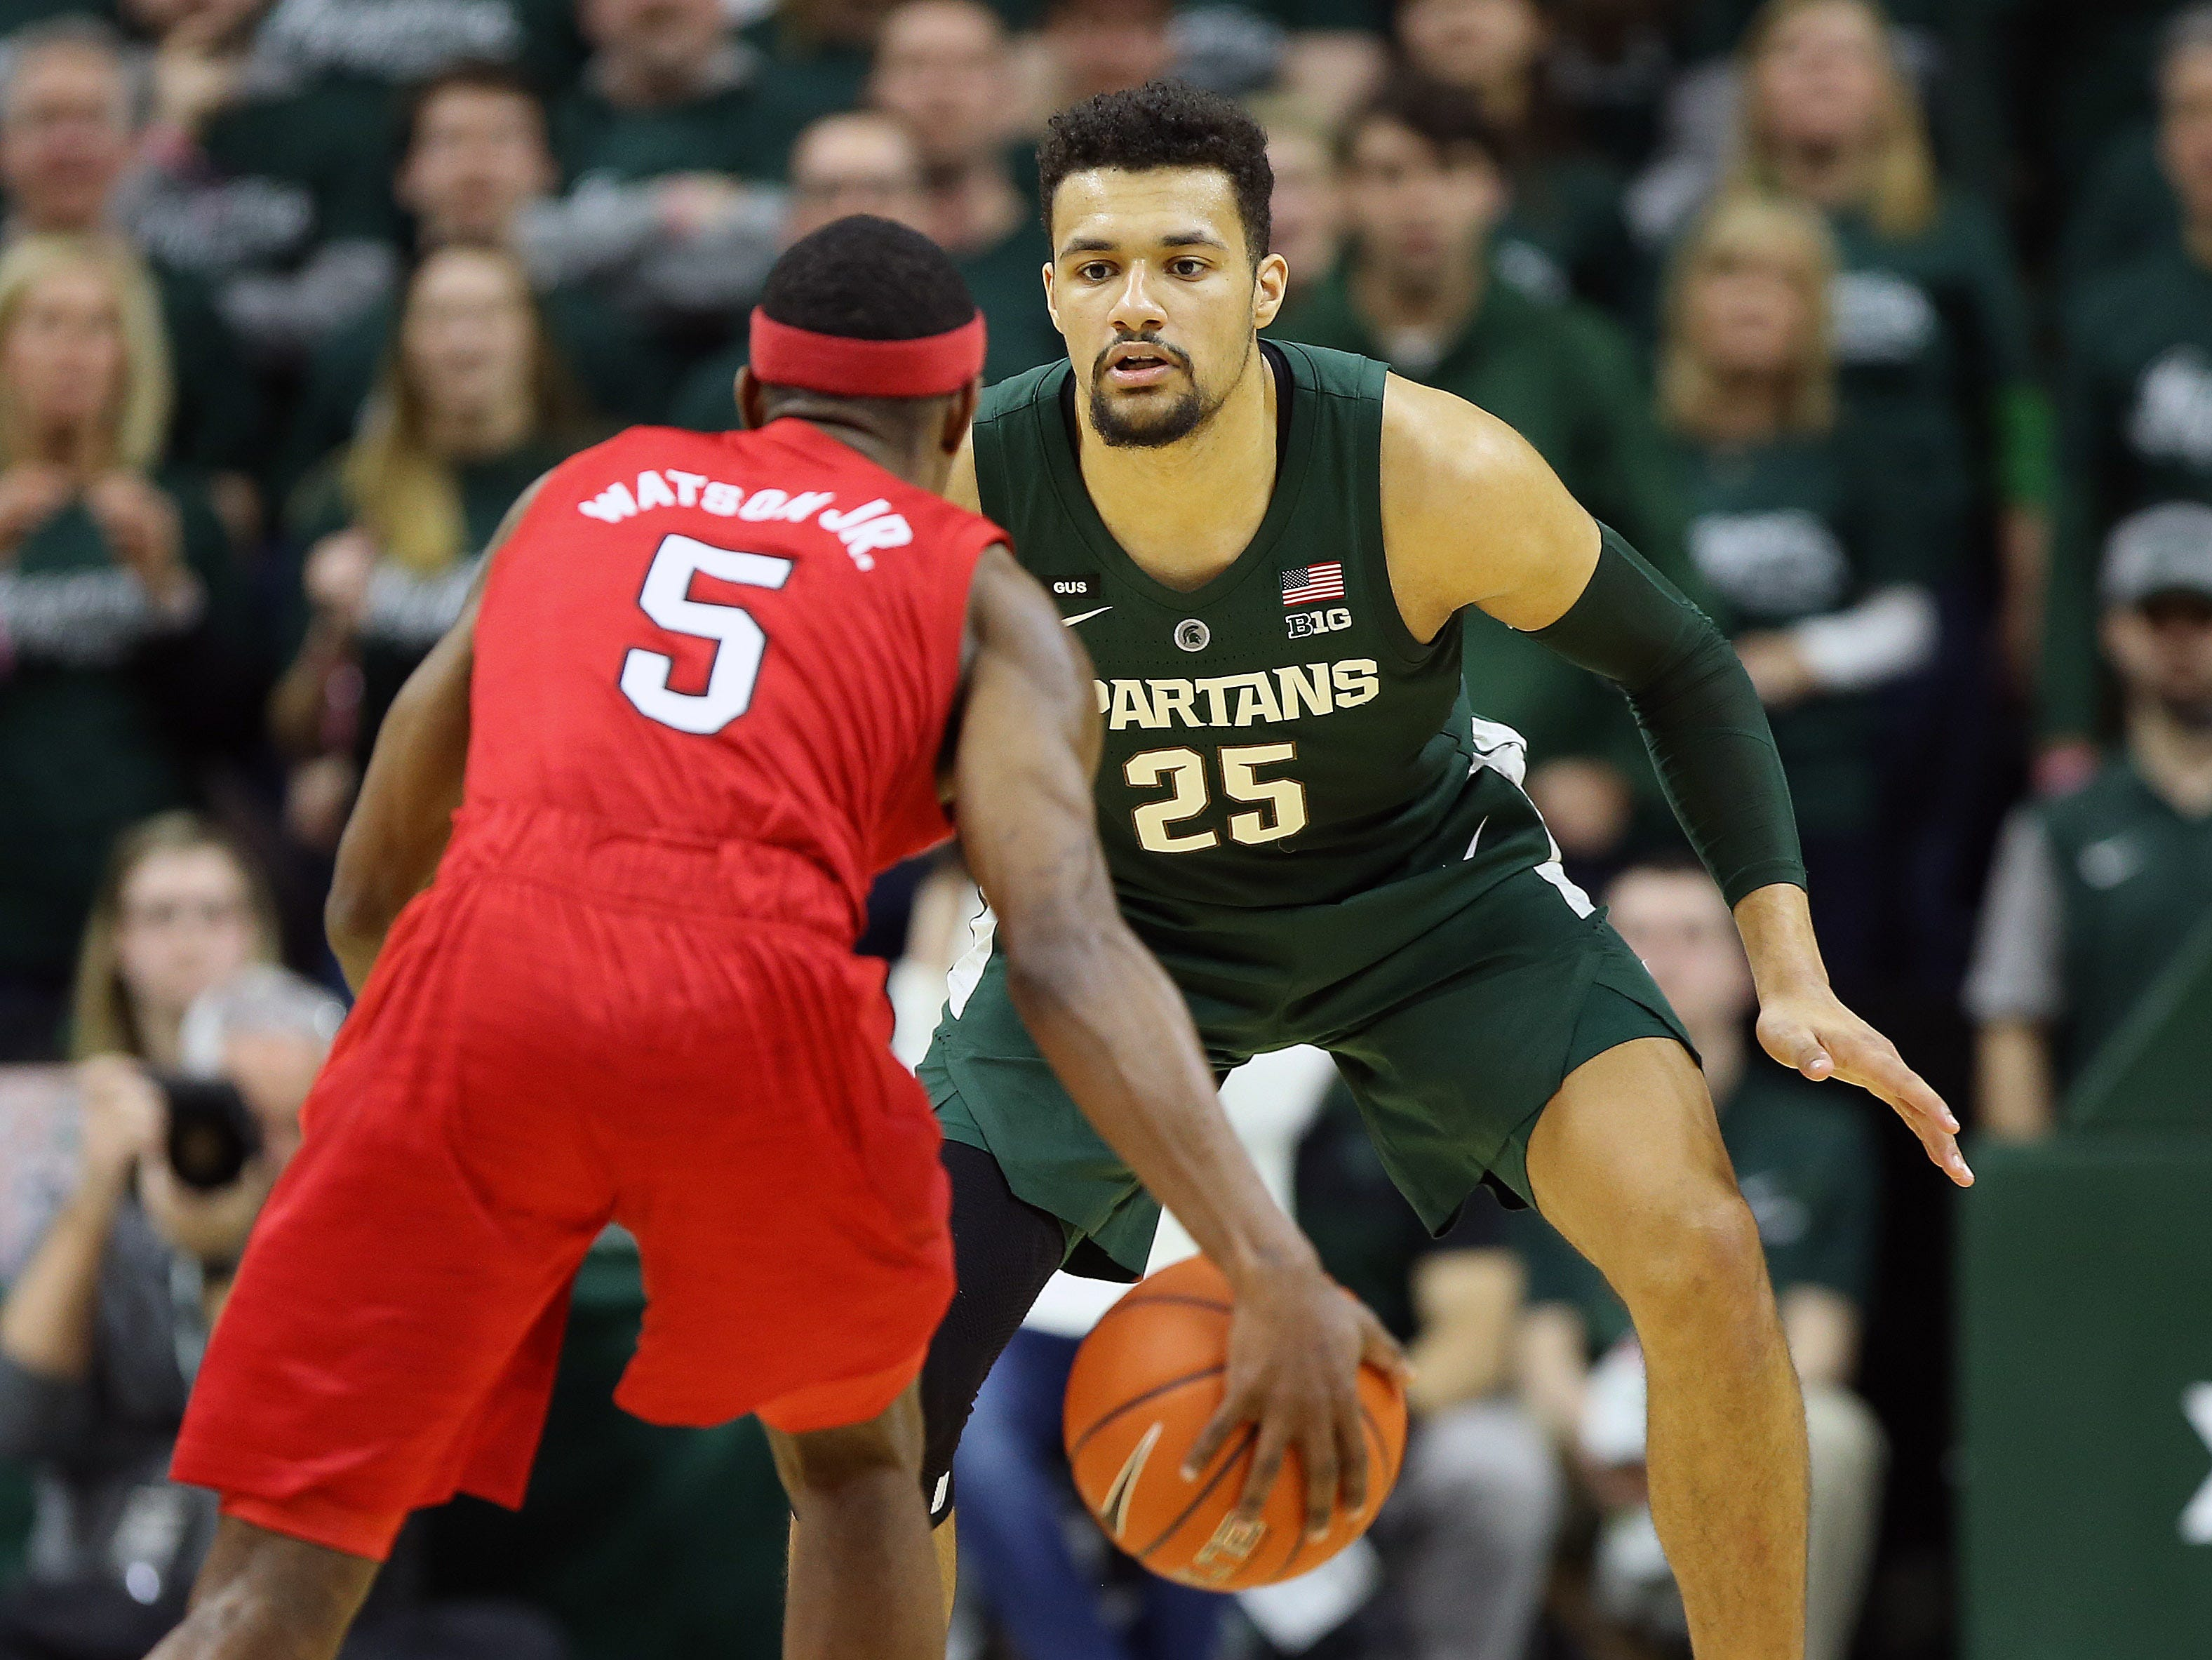 Mar 5, 2019; East Lansing, MI, USA; Michigan State Spartans forward Kenny Goins (25) looks on as Nebraska Cornhuskers guard Glynn Watson Jr. (5) brings the ball downcourt during the second half at the Breslin Center. Mandatory Credit: Mike Carter-USA TODAY Sports